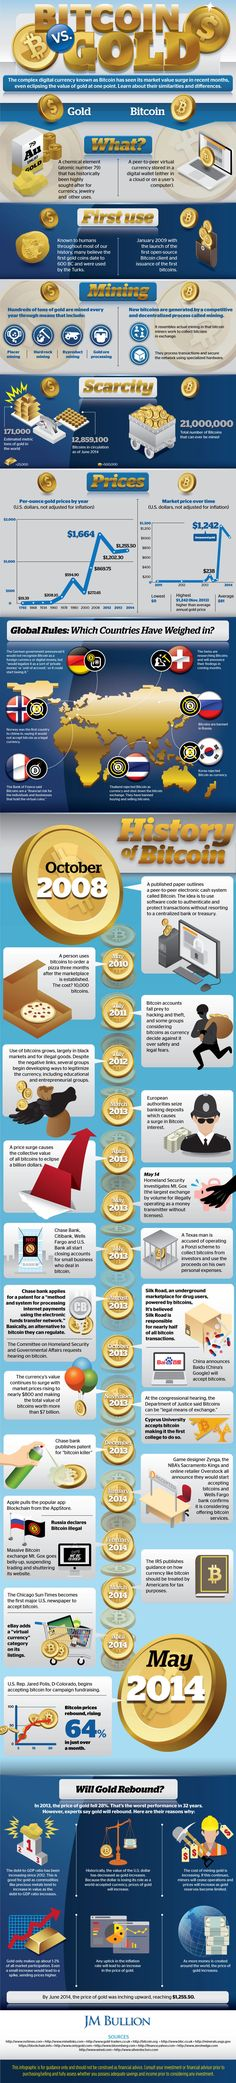 Bitcoin vs Gold Infographic #investing #finance